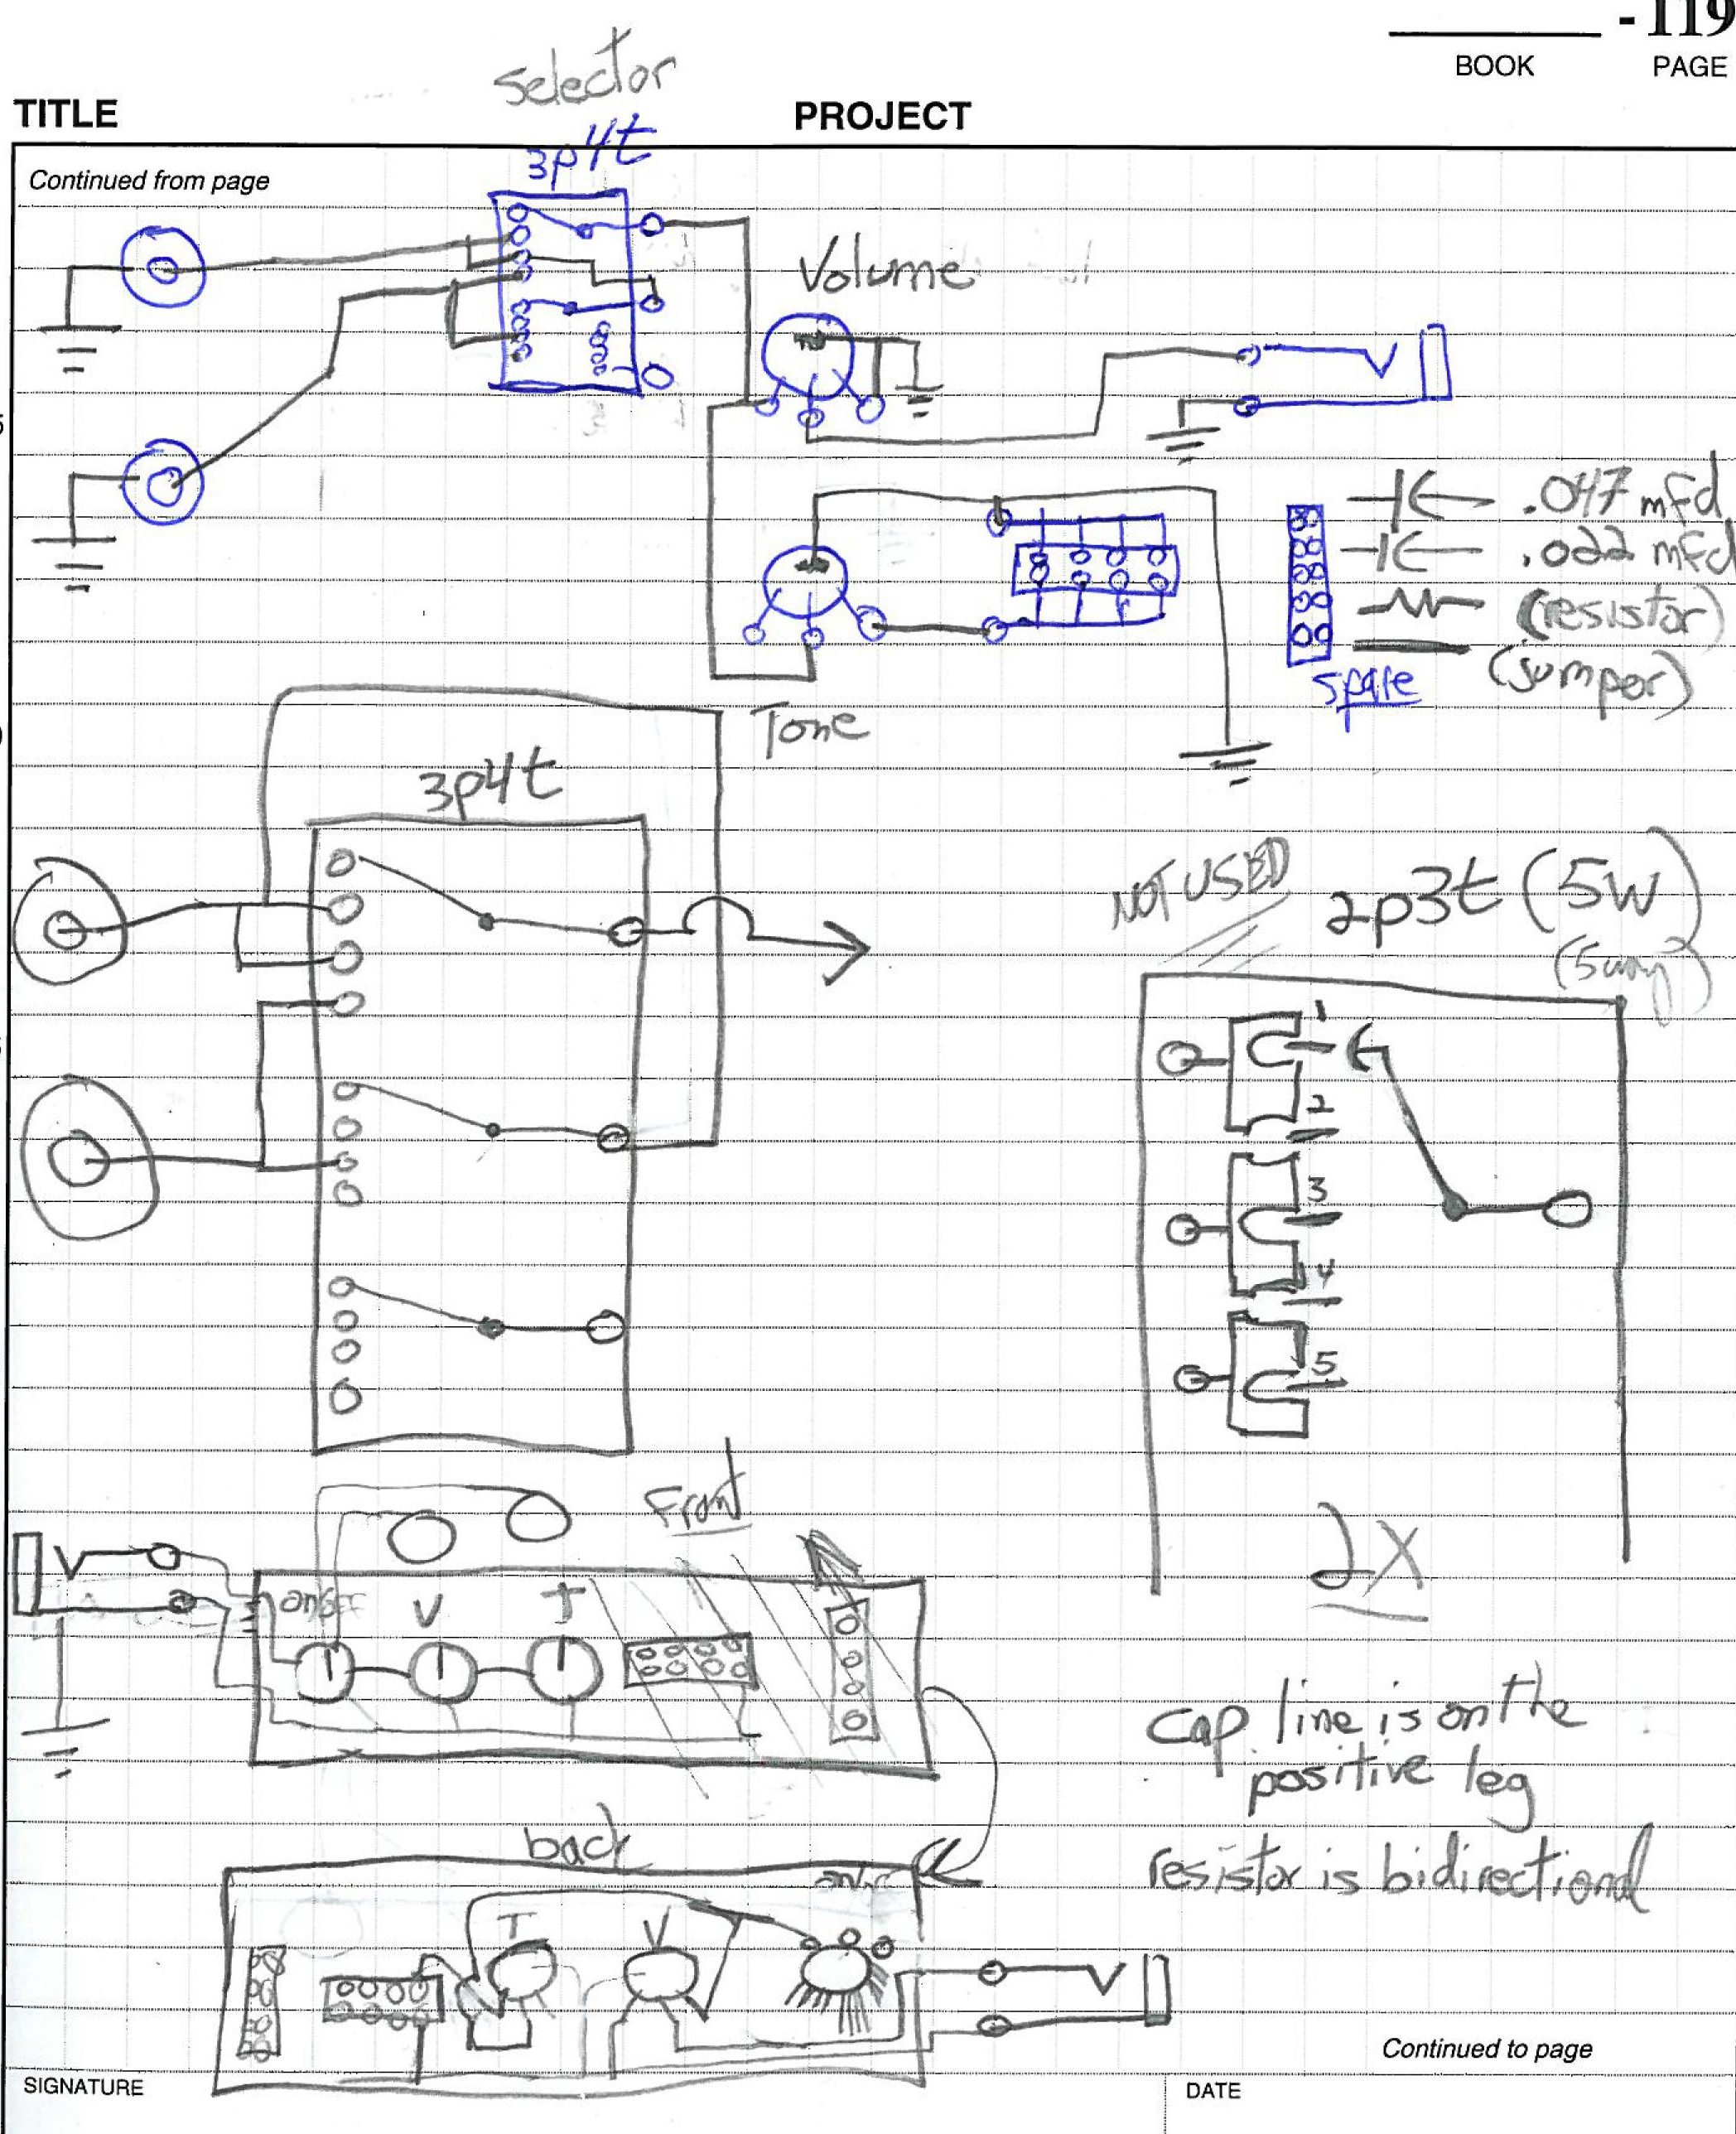 Setting On Off Volume Pot Wiring Wire Data Schema Potentiometer Diagram Weekend Warrior Cbg Build From Beginning To End Cigar Guitar A